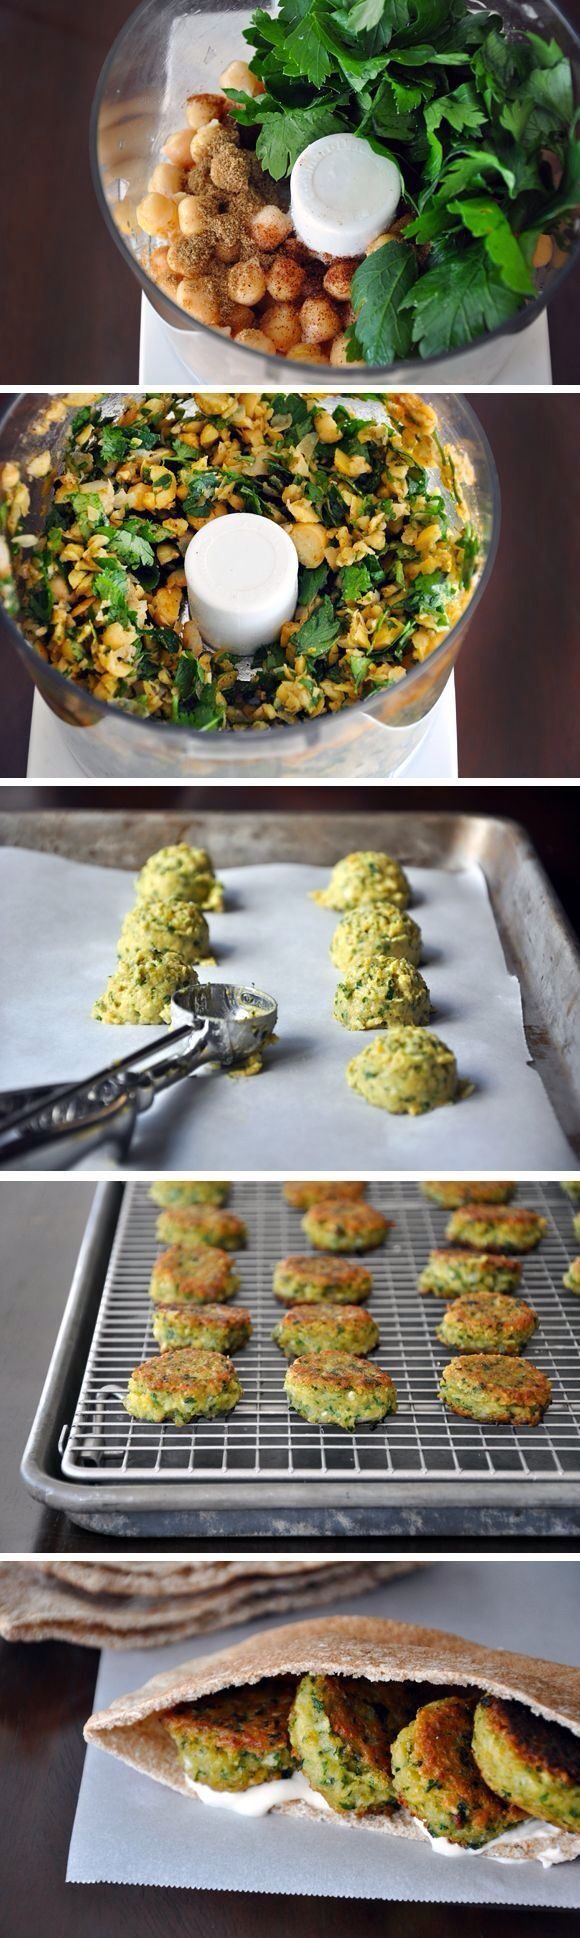 ... falafel with garlic tahini sauce recipe dishmaps tahini sauce falafel